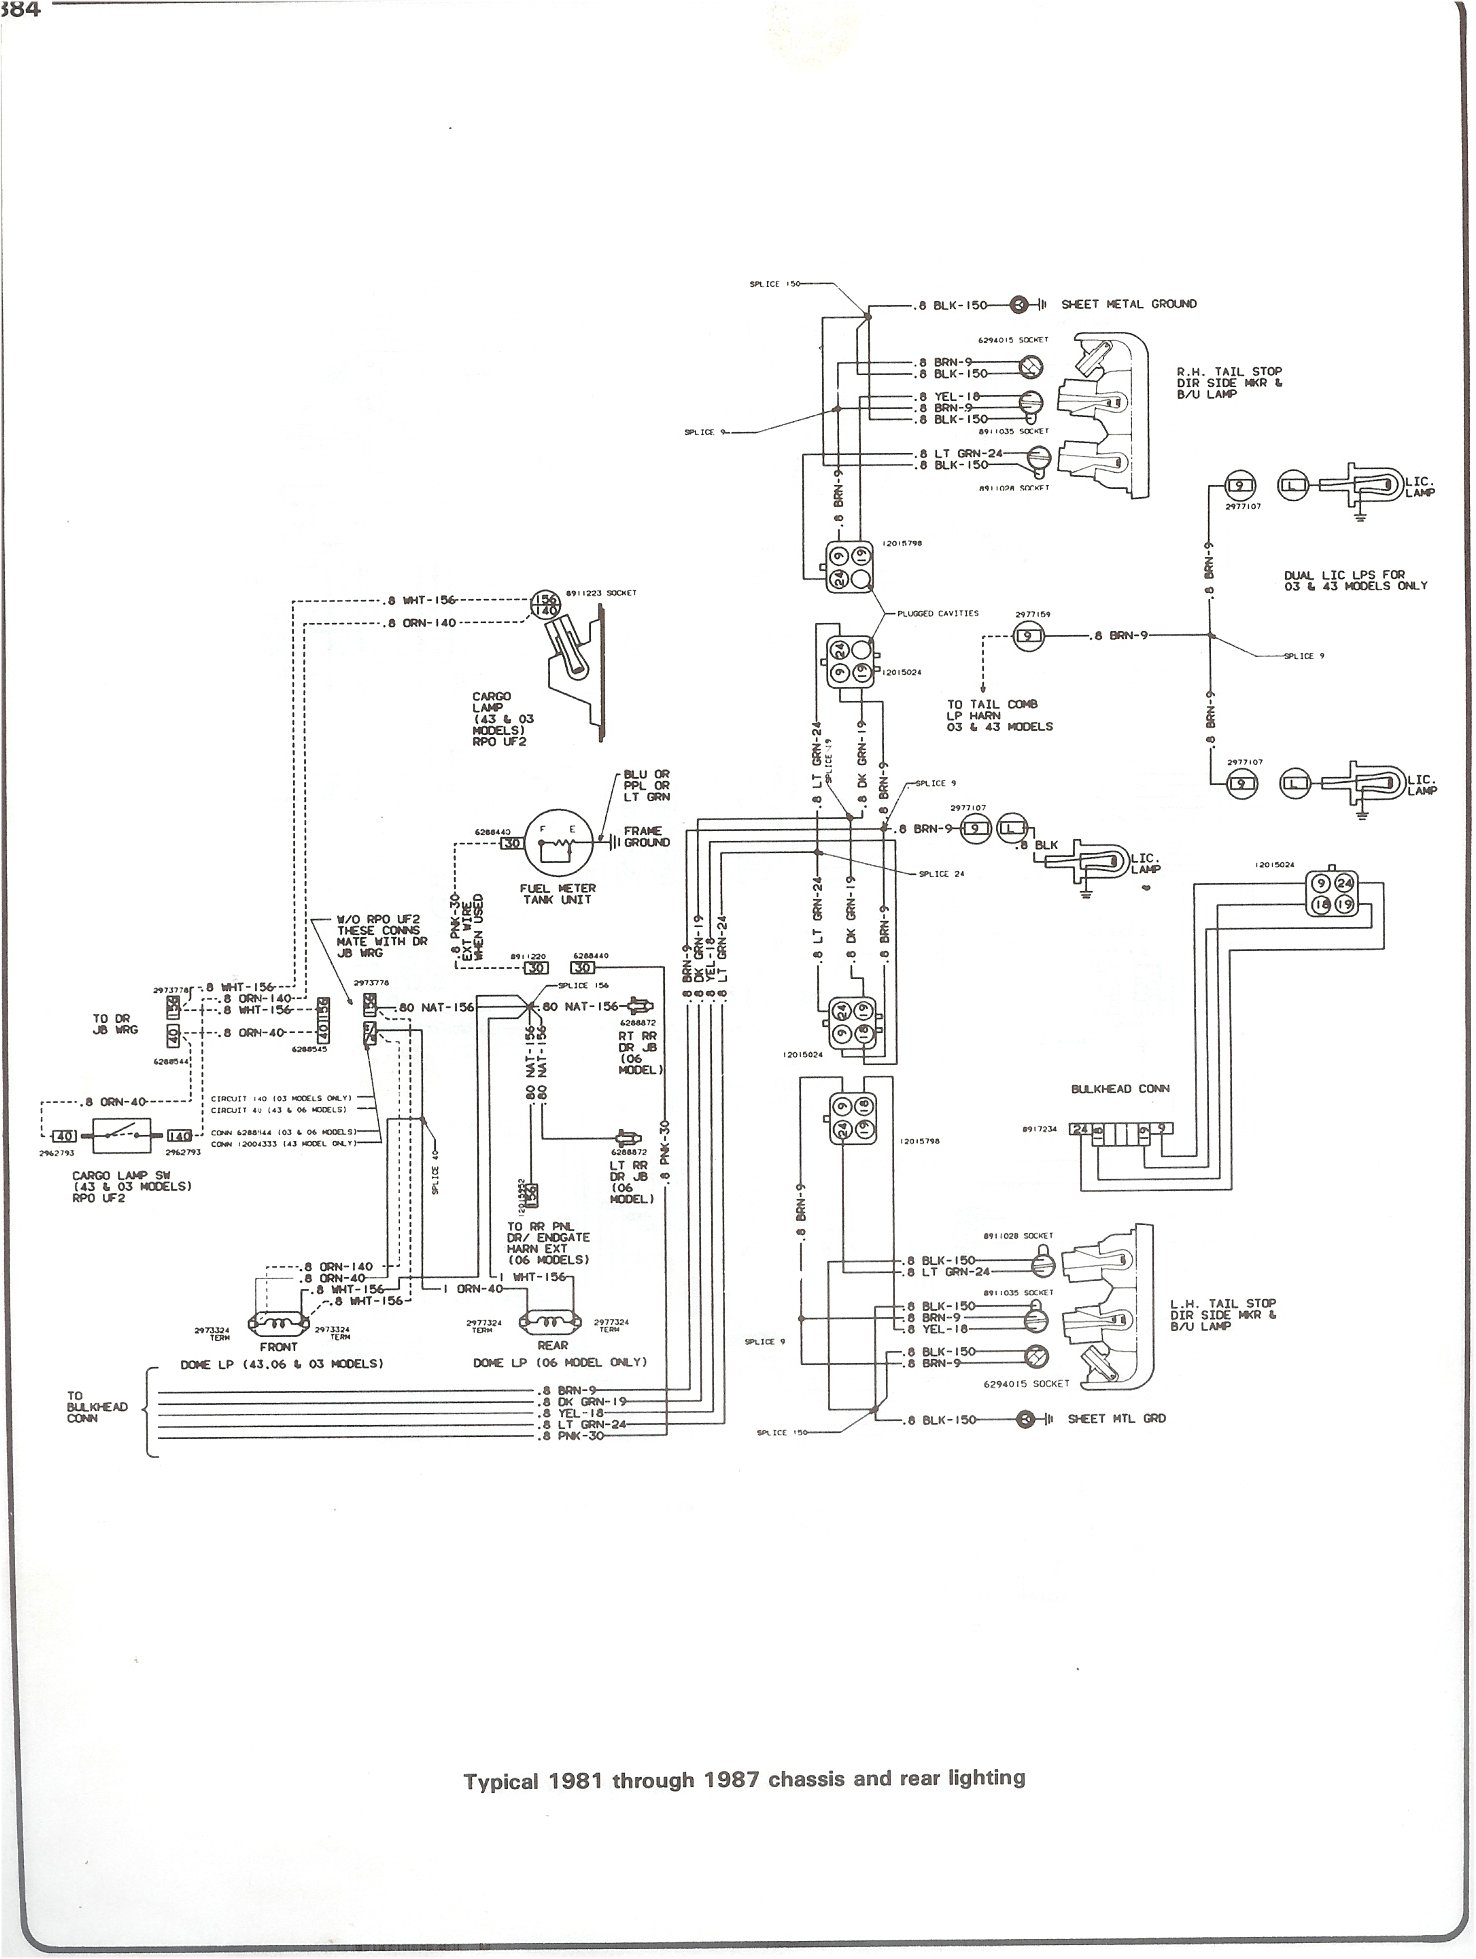 2001 Chevy Suburban Wiring Diagram Starting Know About Fuse Silverado Drawing At Getdrawings Com Free For Chevrolet